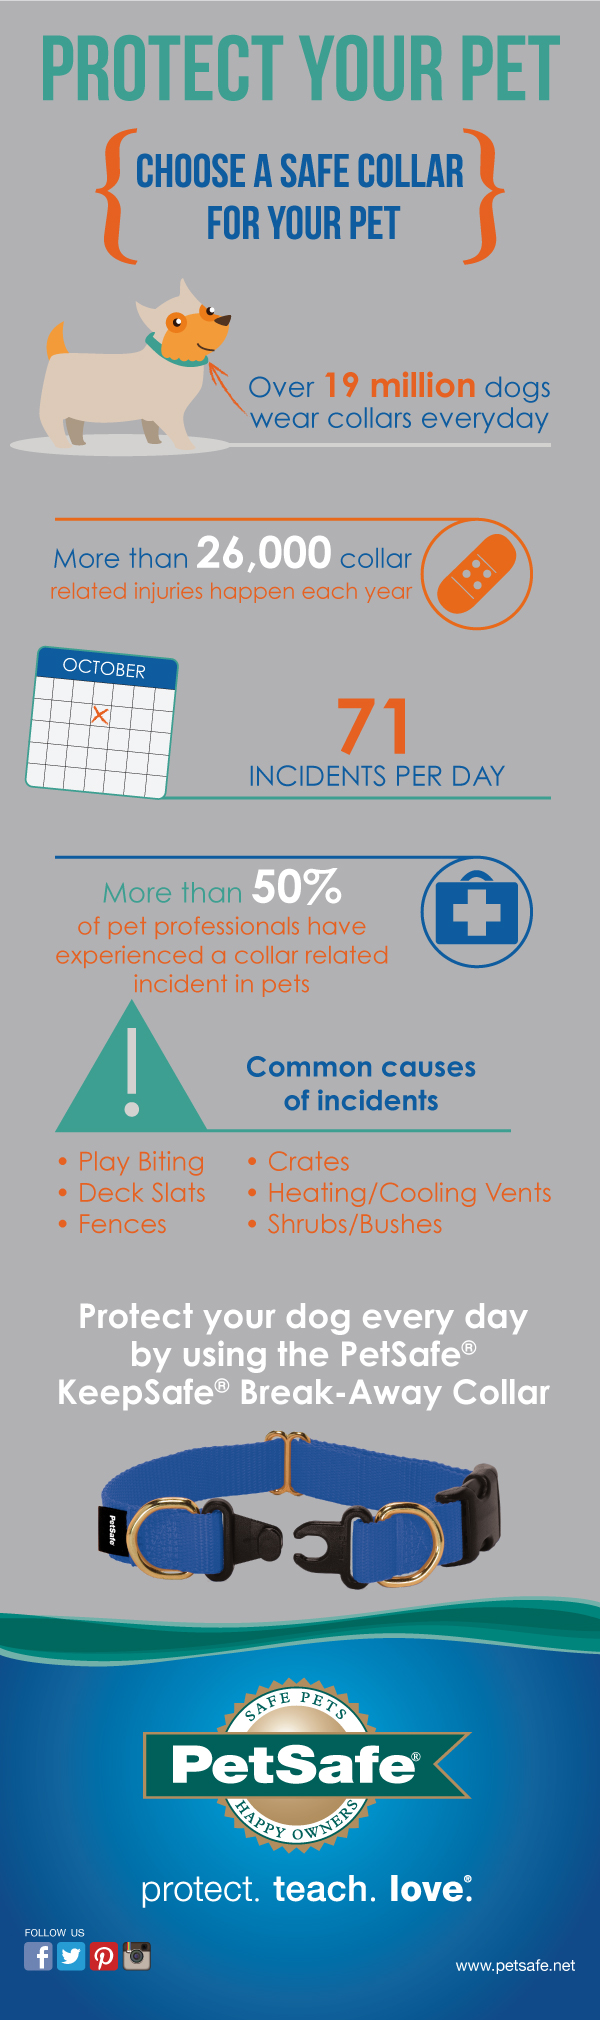 Petsafe Collar Safety Awareness Week Infographic